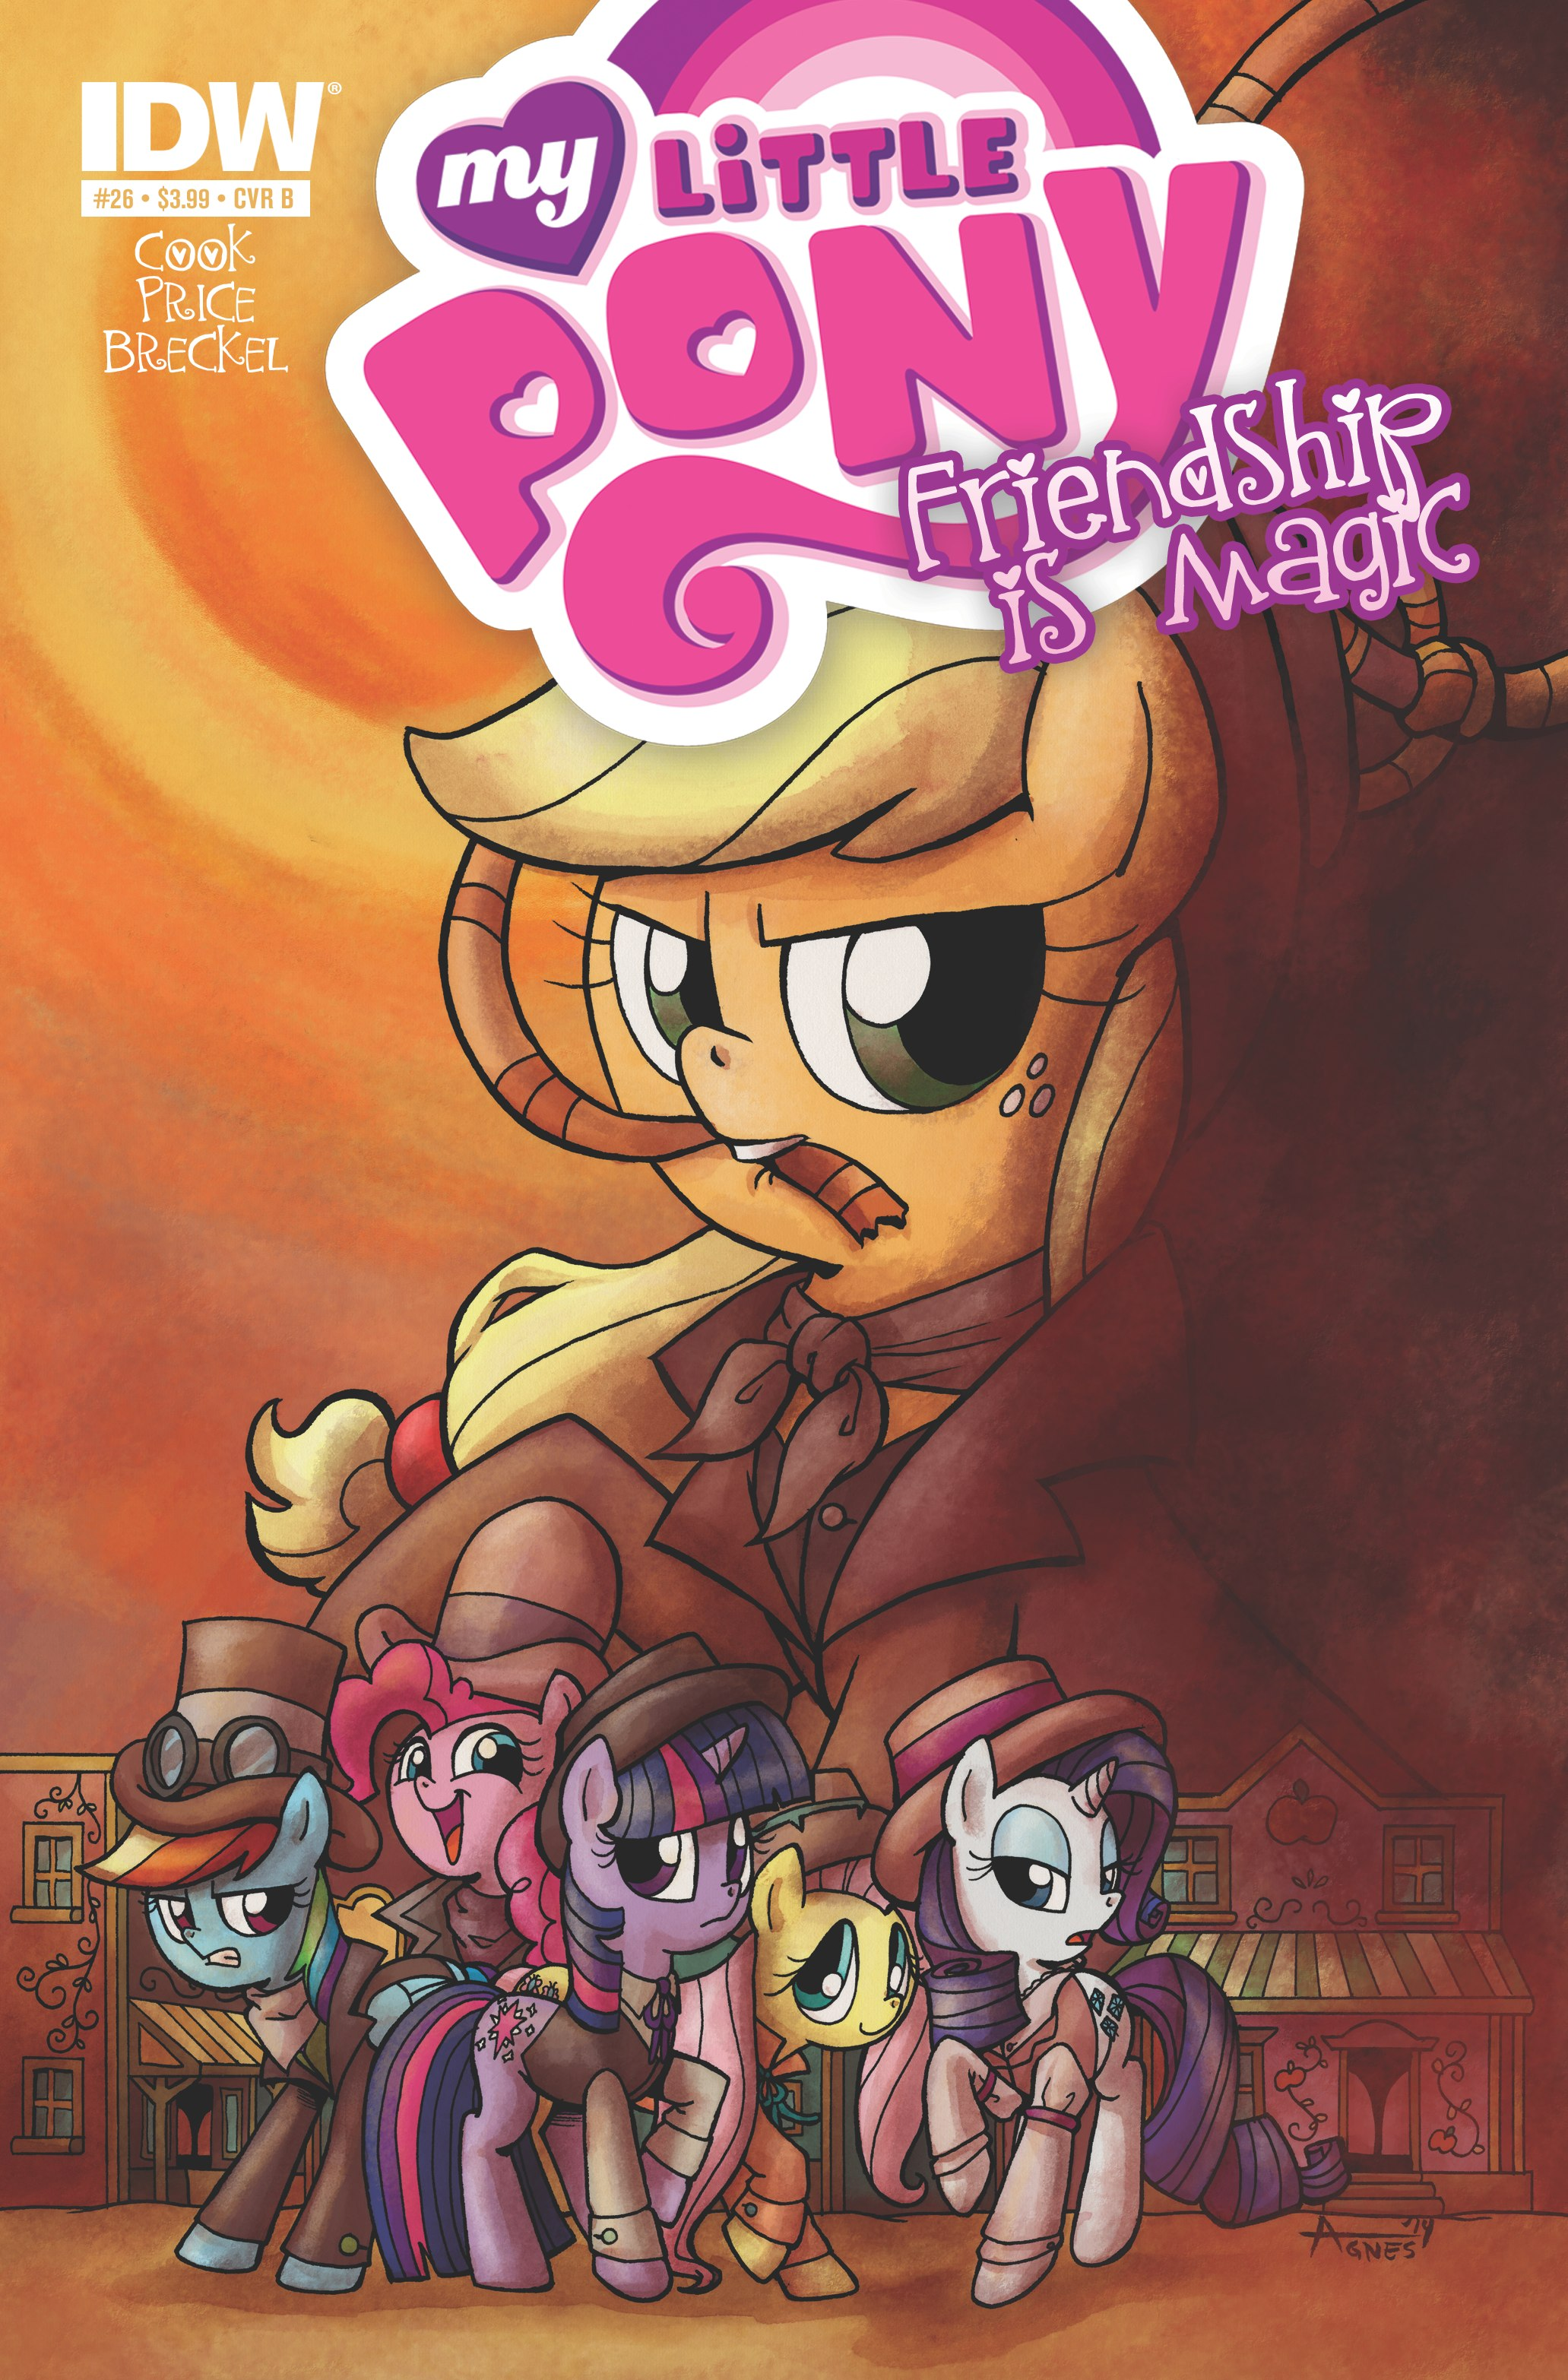 MY LITTLE PONY FRIENDSHIP IS MAGIC #26